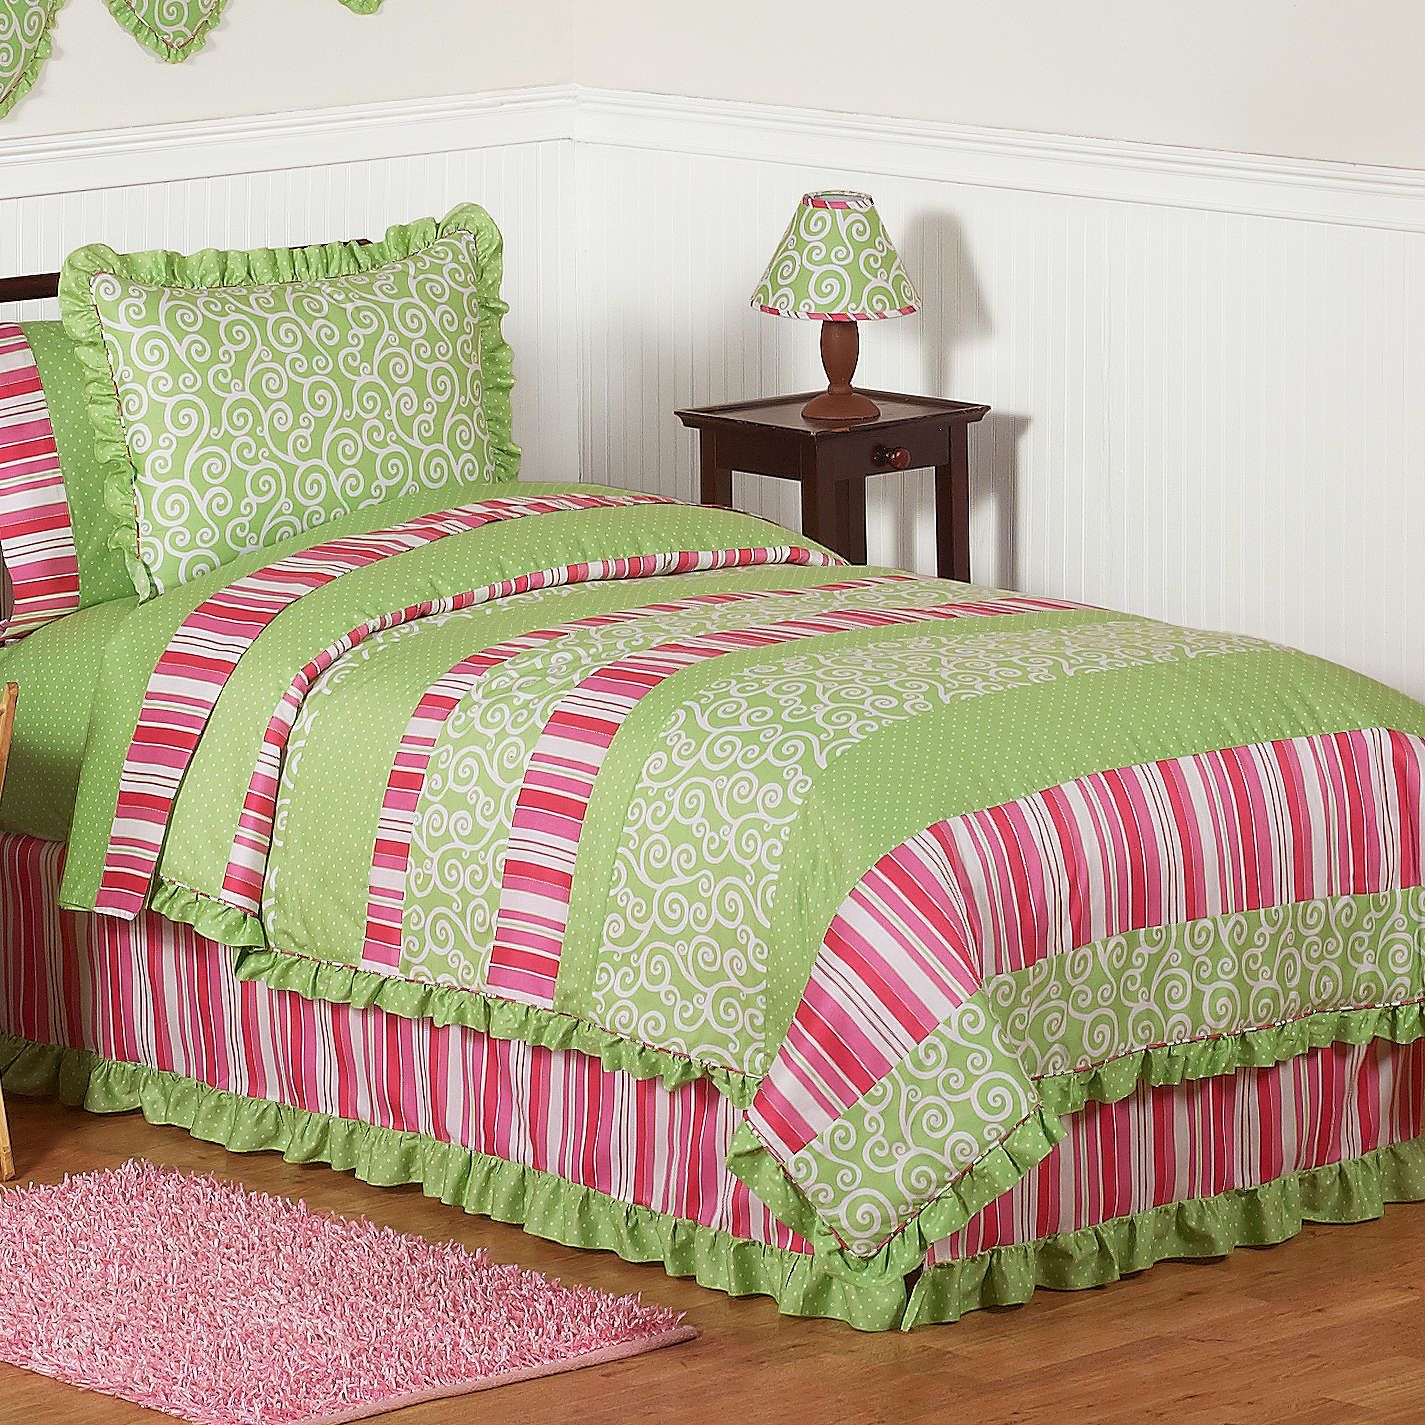 pink and green plaid bedding Yahoo Search Results